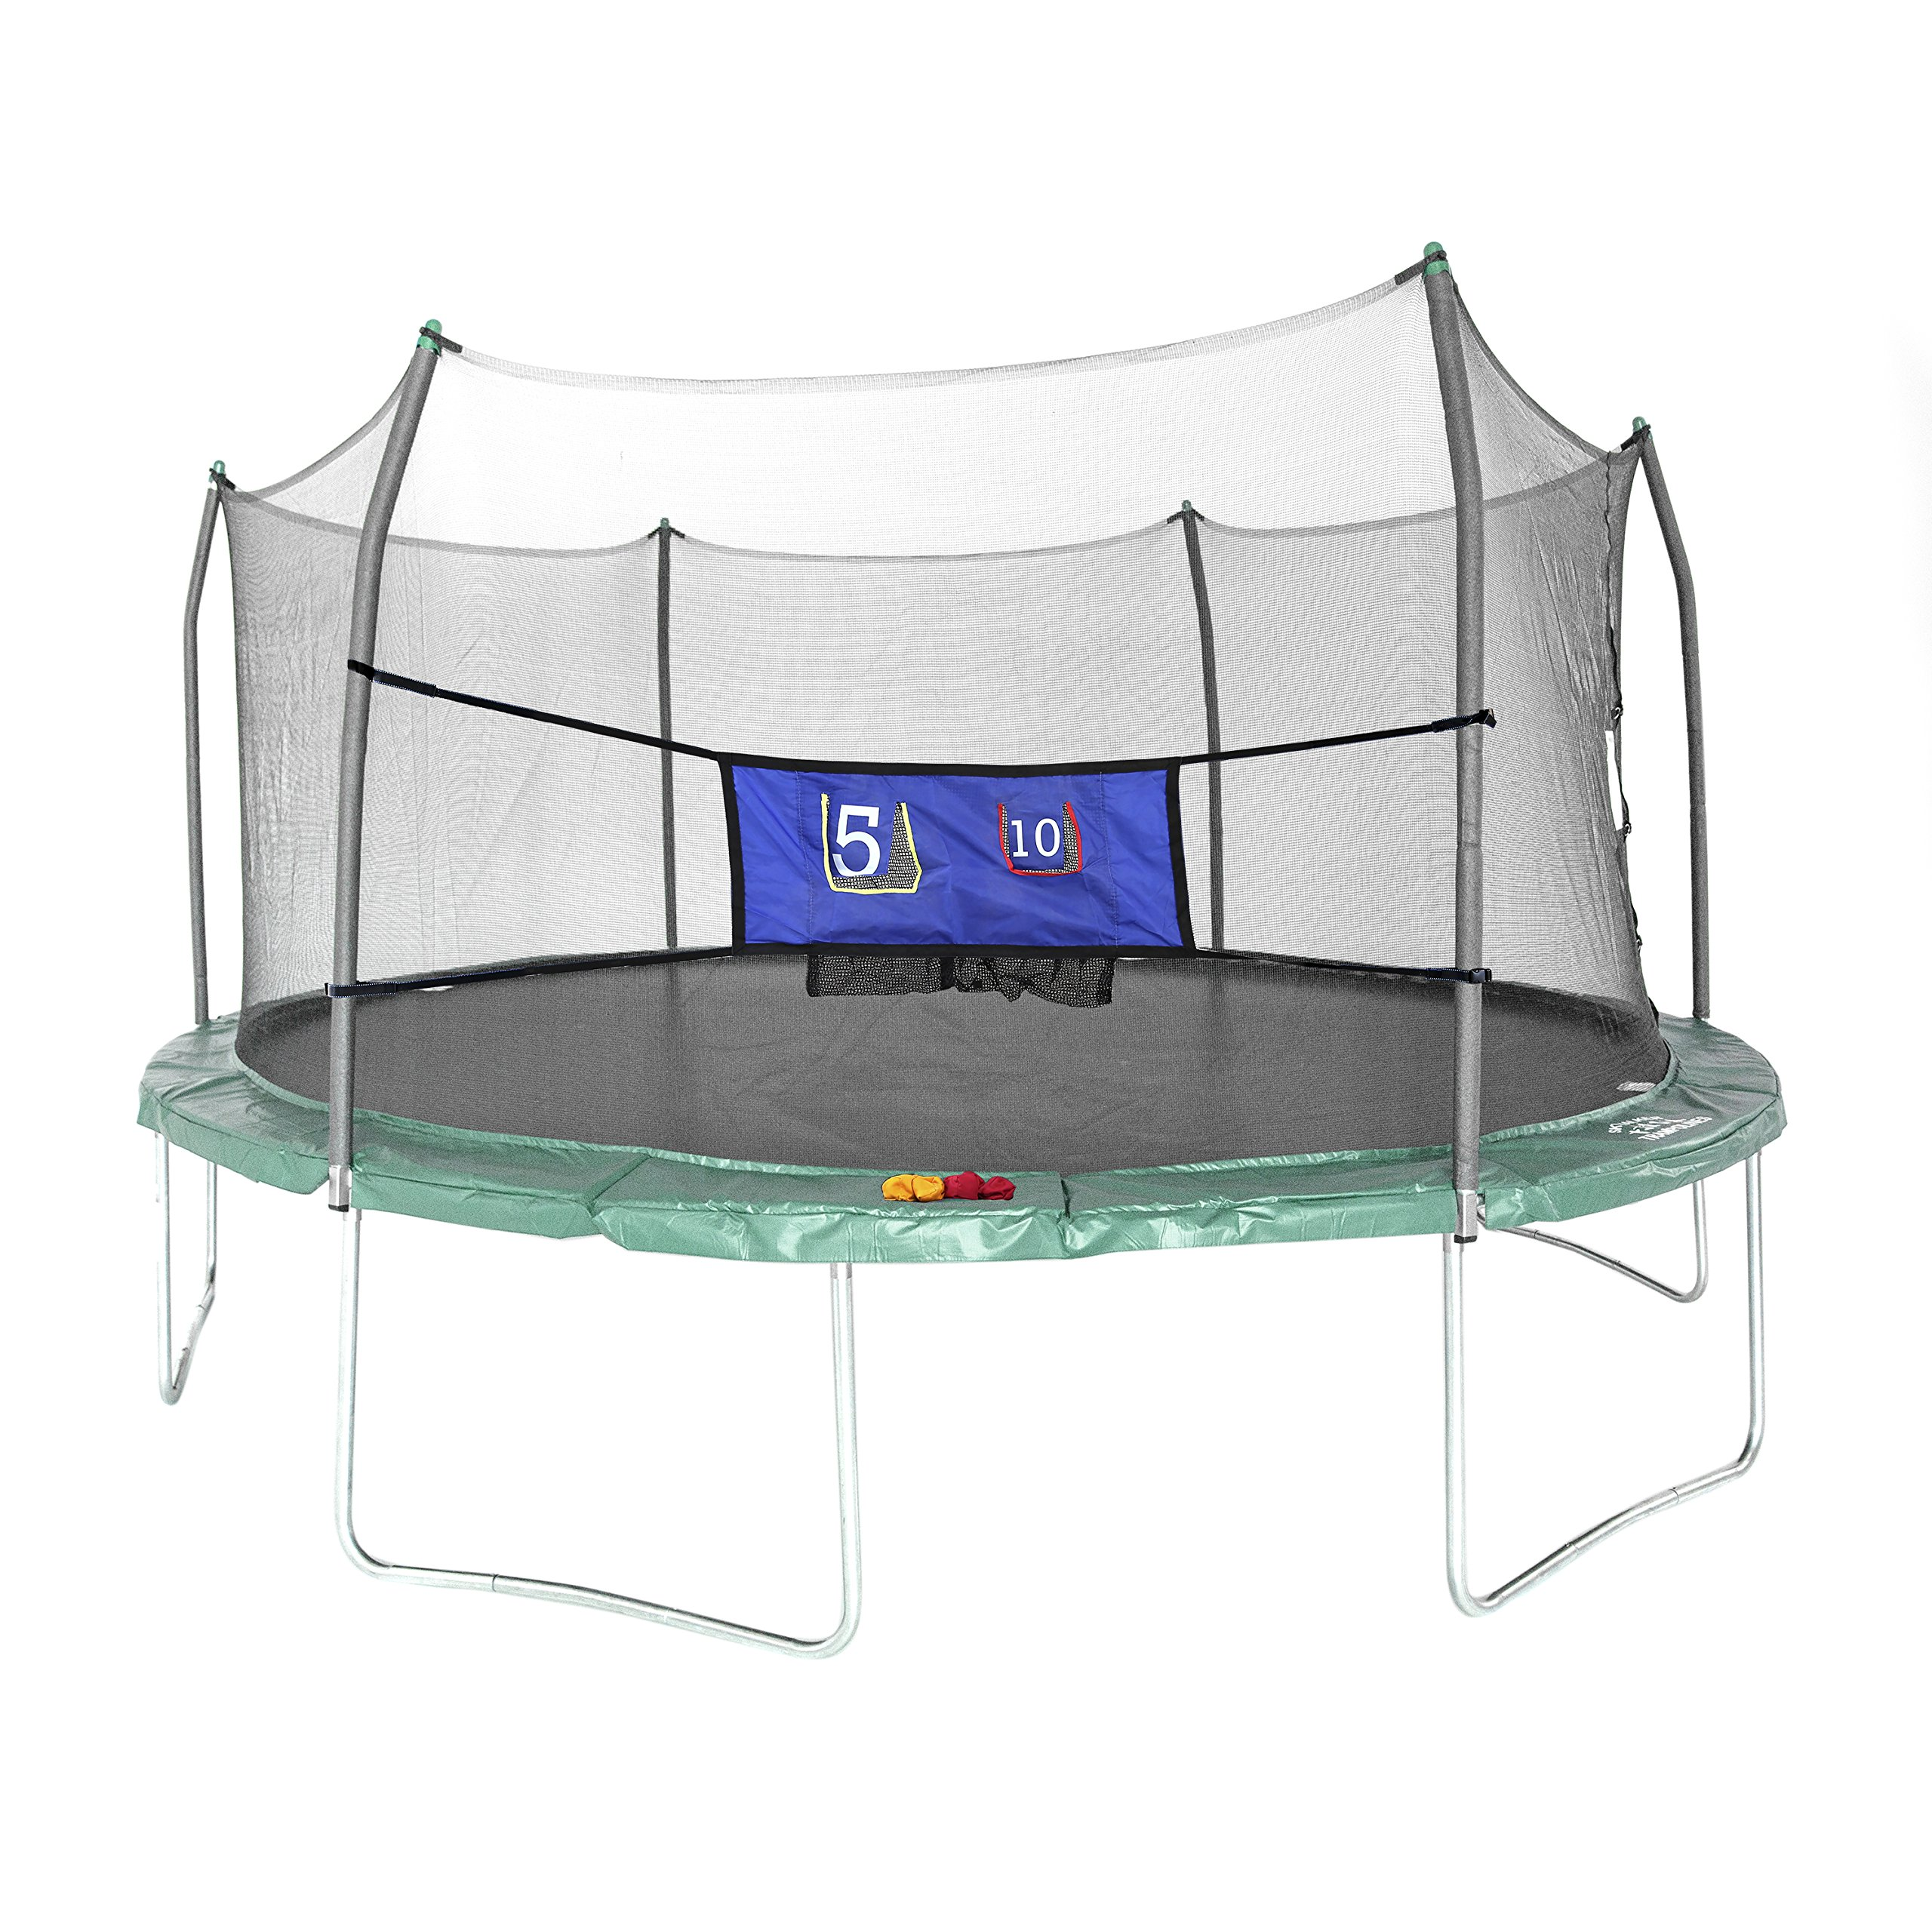 Skywalker Trampolines Oval Trampoline with Enclosure and Double Toss Game, Green, 16'